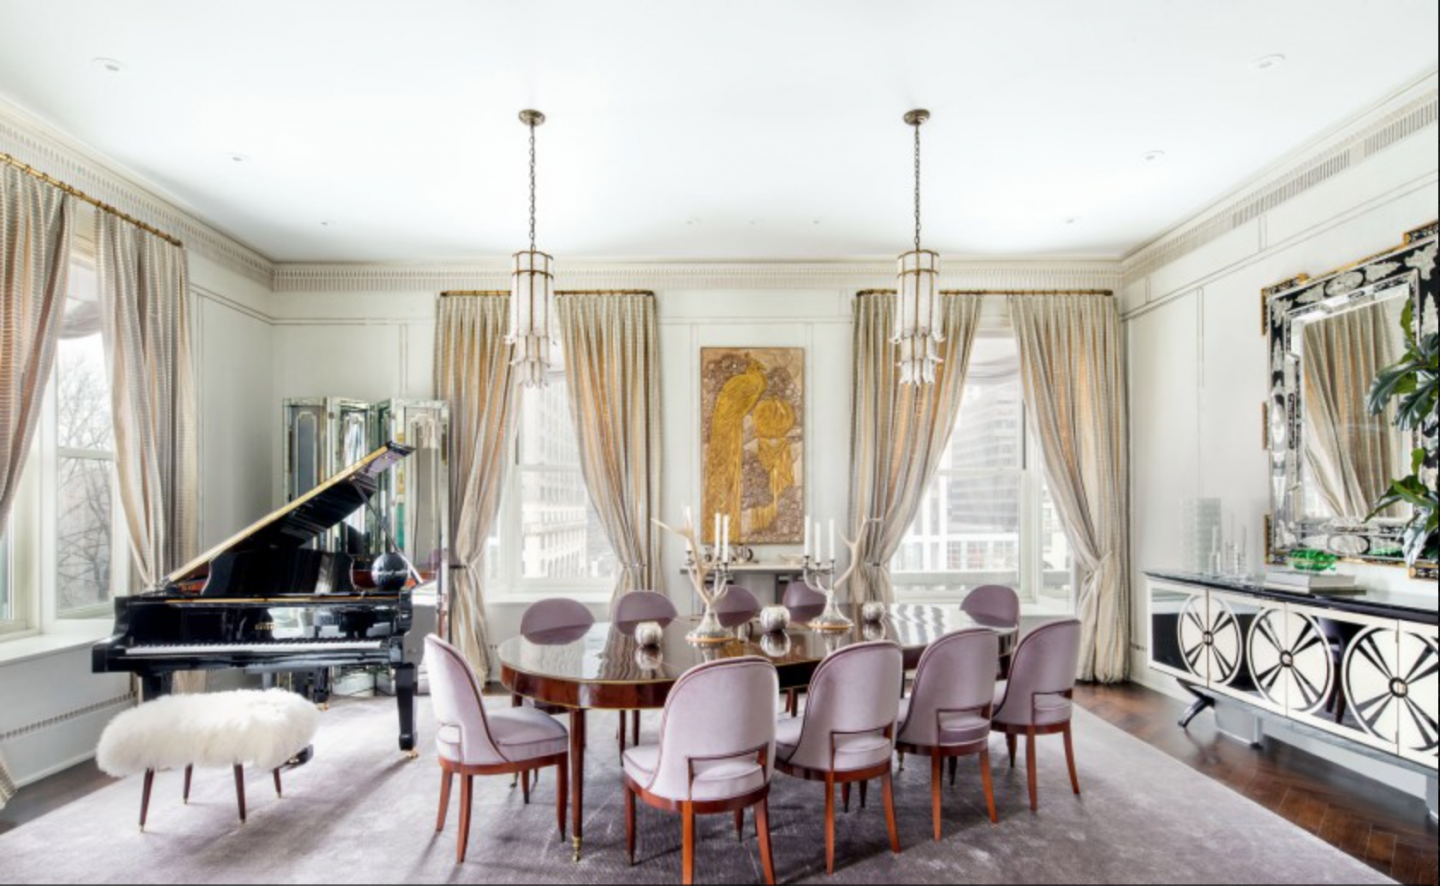 Living and dining room spaces were enlarged during renovation to improve light and views.